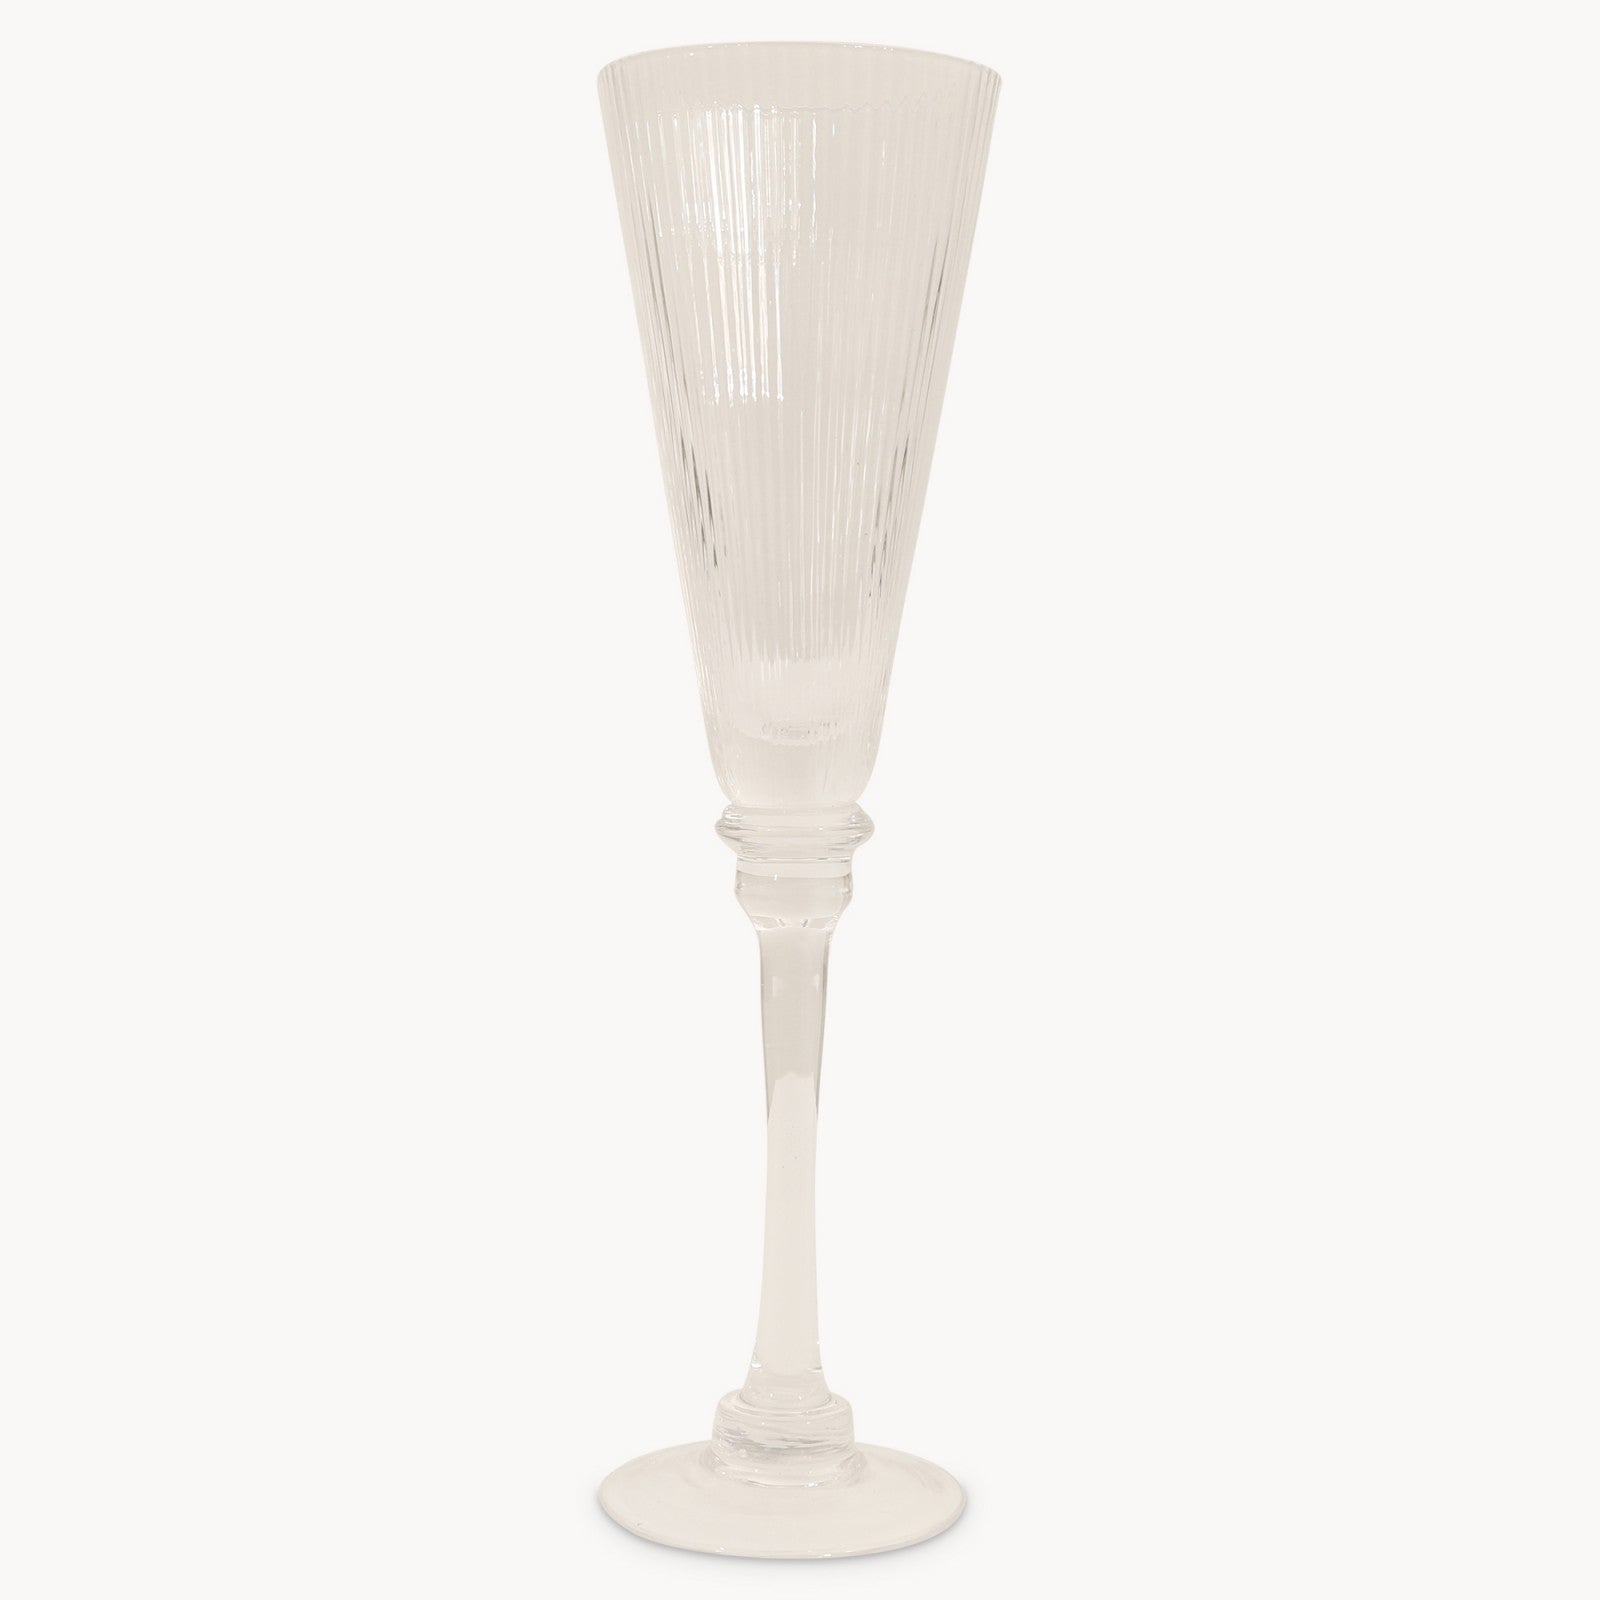 McGregor Thin Ribbed Champagne Glass